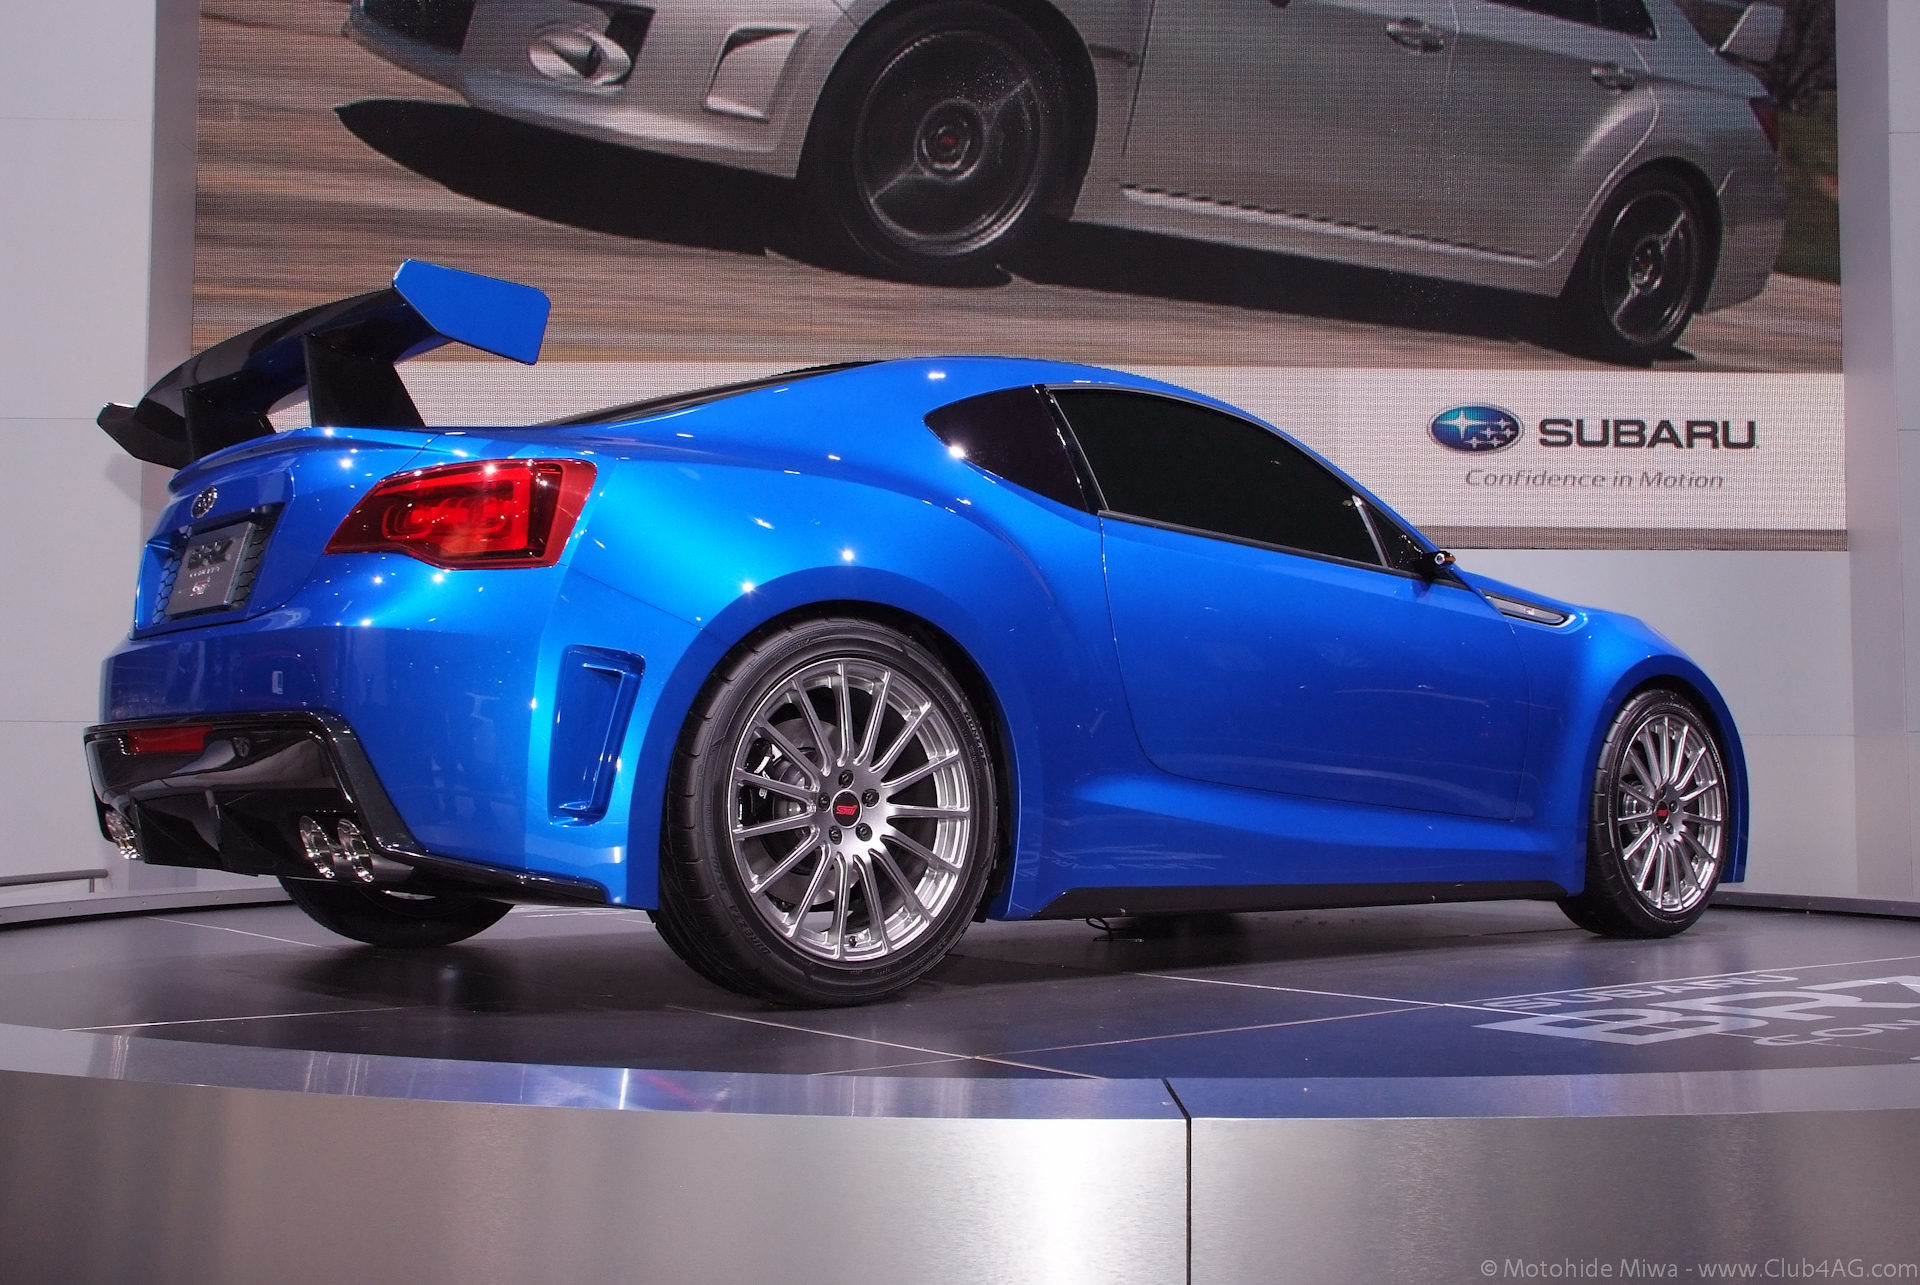 Filesubaru brz sti concept flickr motoclub4ag 1g filesubaru brz sti concept flickr motoclub4ag 1 vanachro Image collections